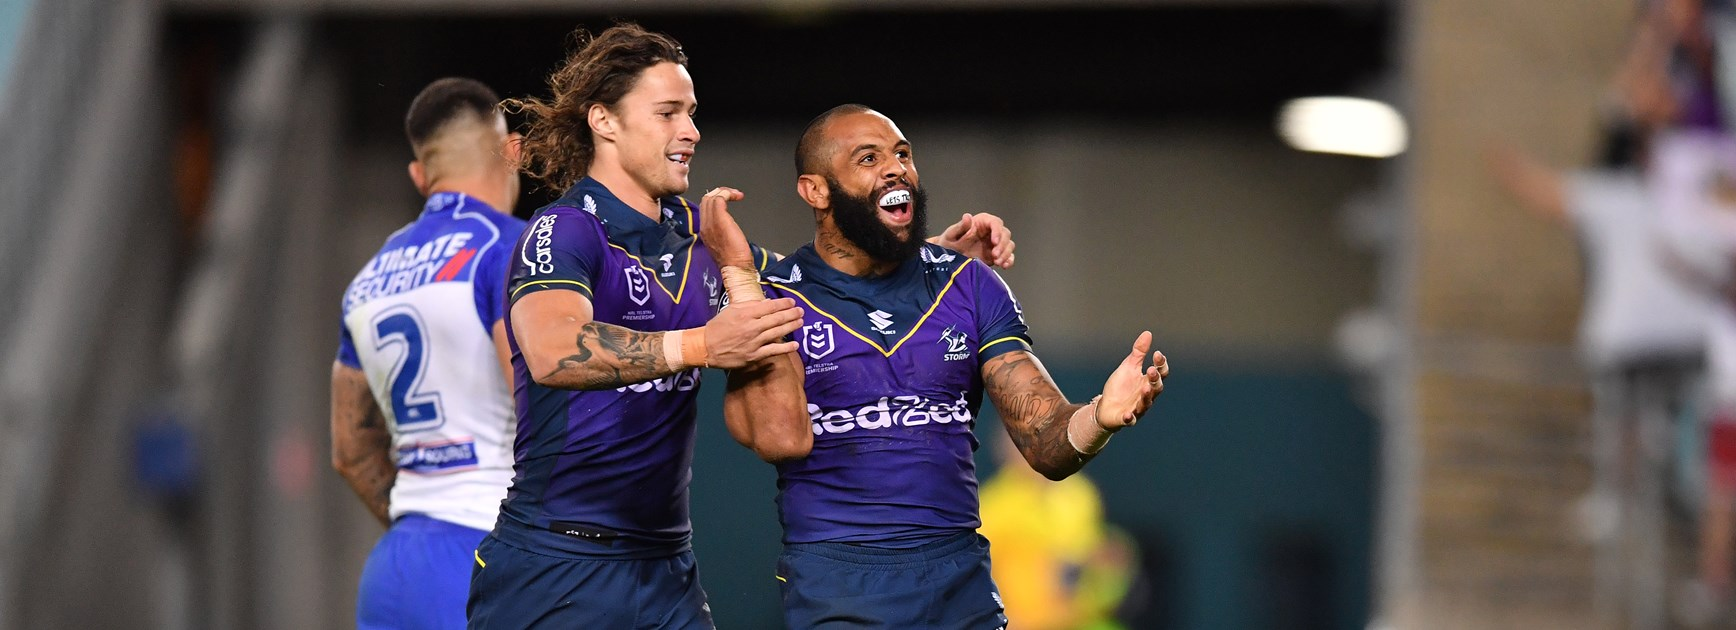 Storm's attacking revolution shows rivals how to adapt in six-again era: Pearce